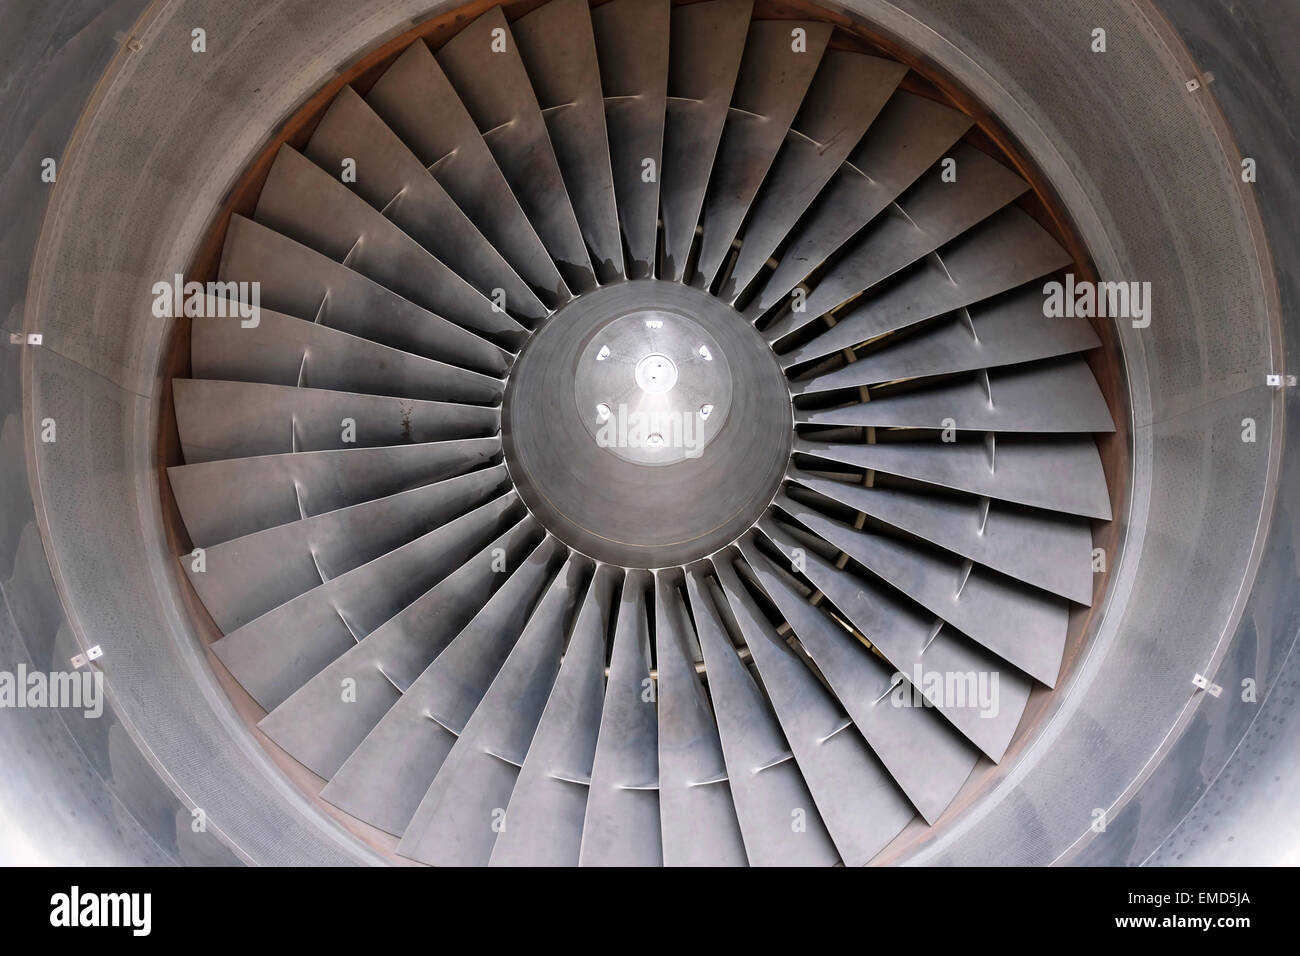 Looking into a Rolls Royce RB211 aero engine - Stock Image